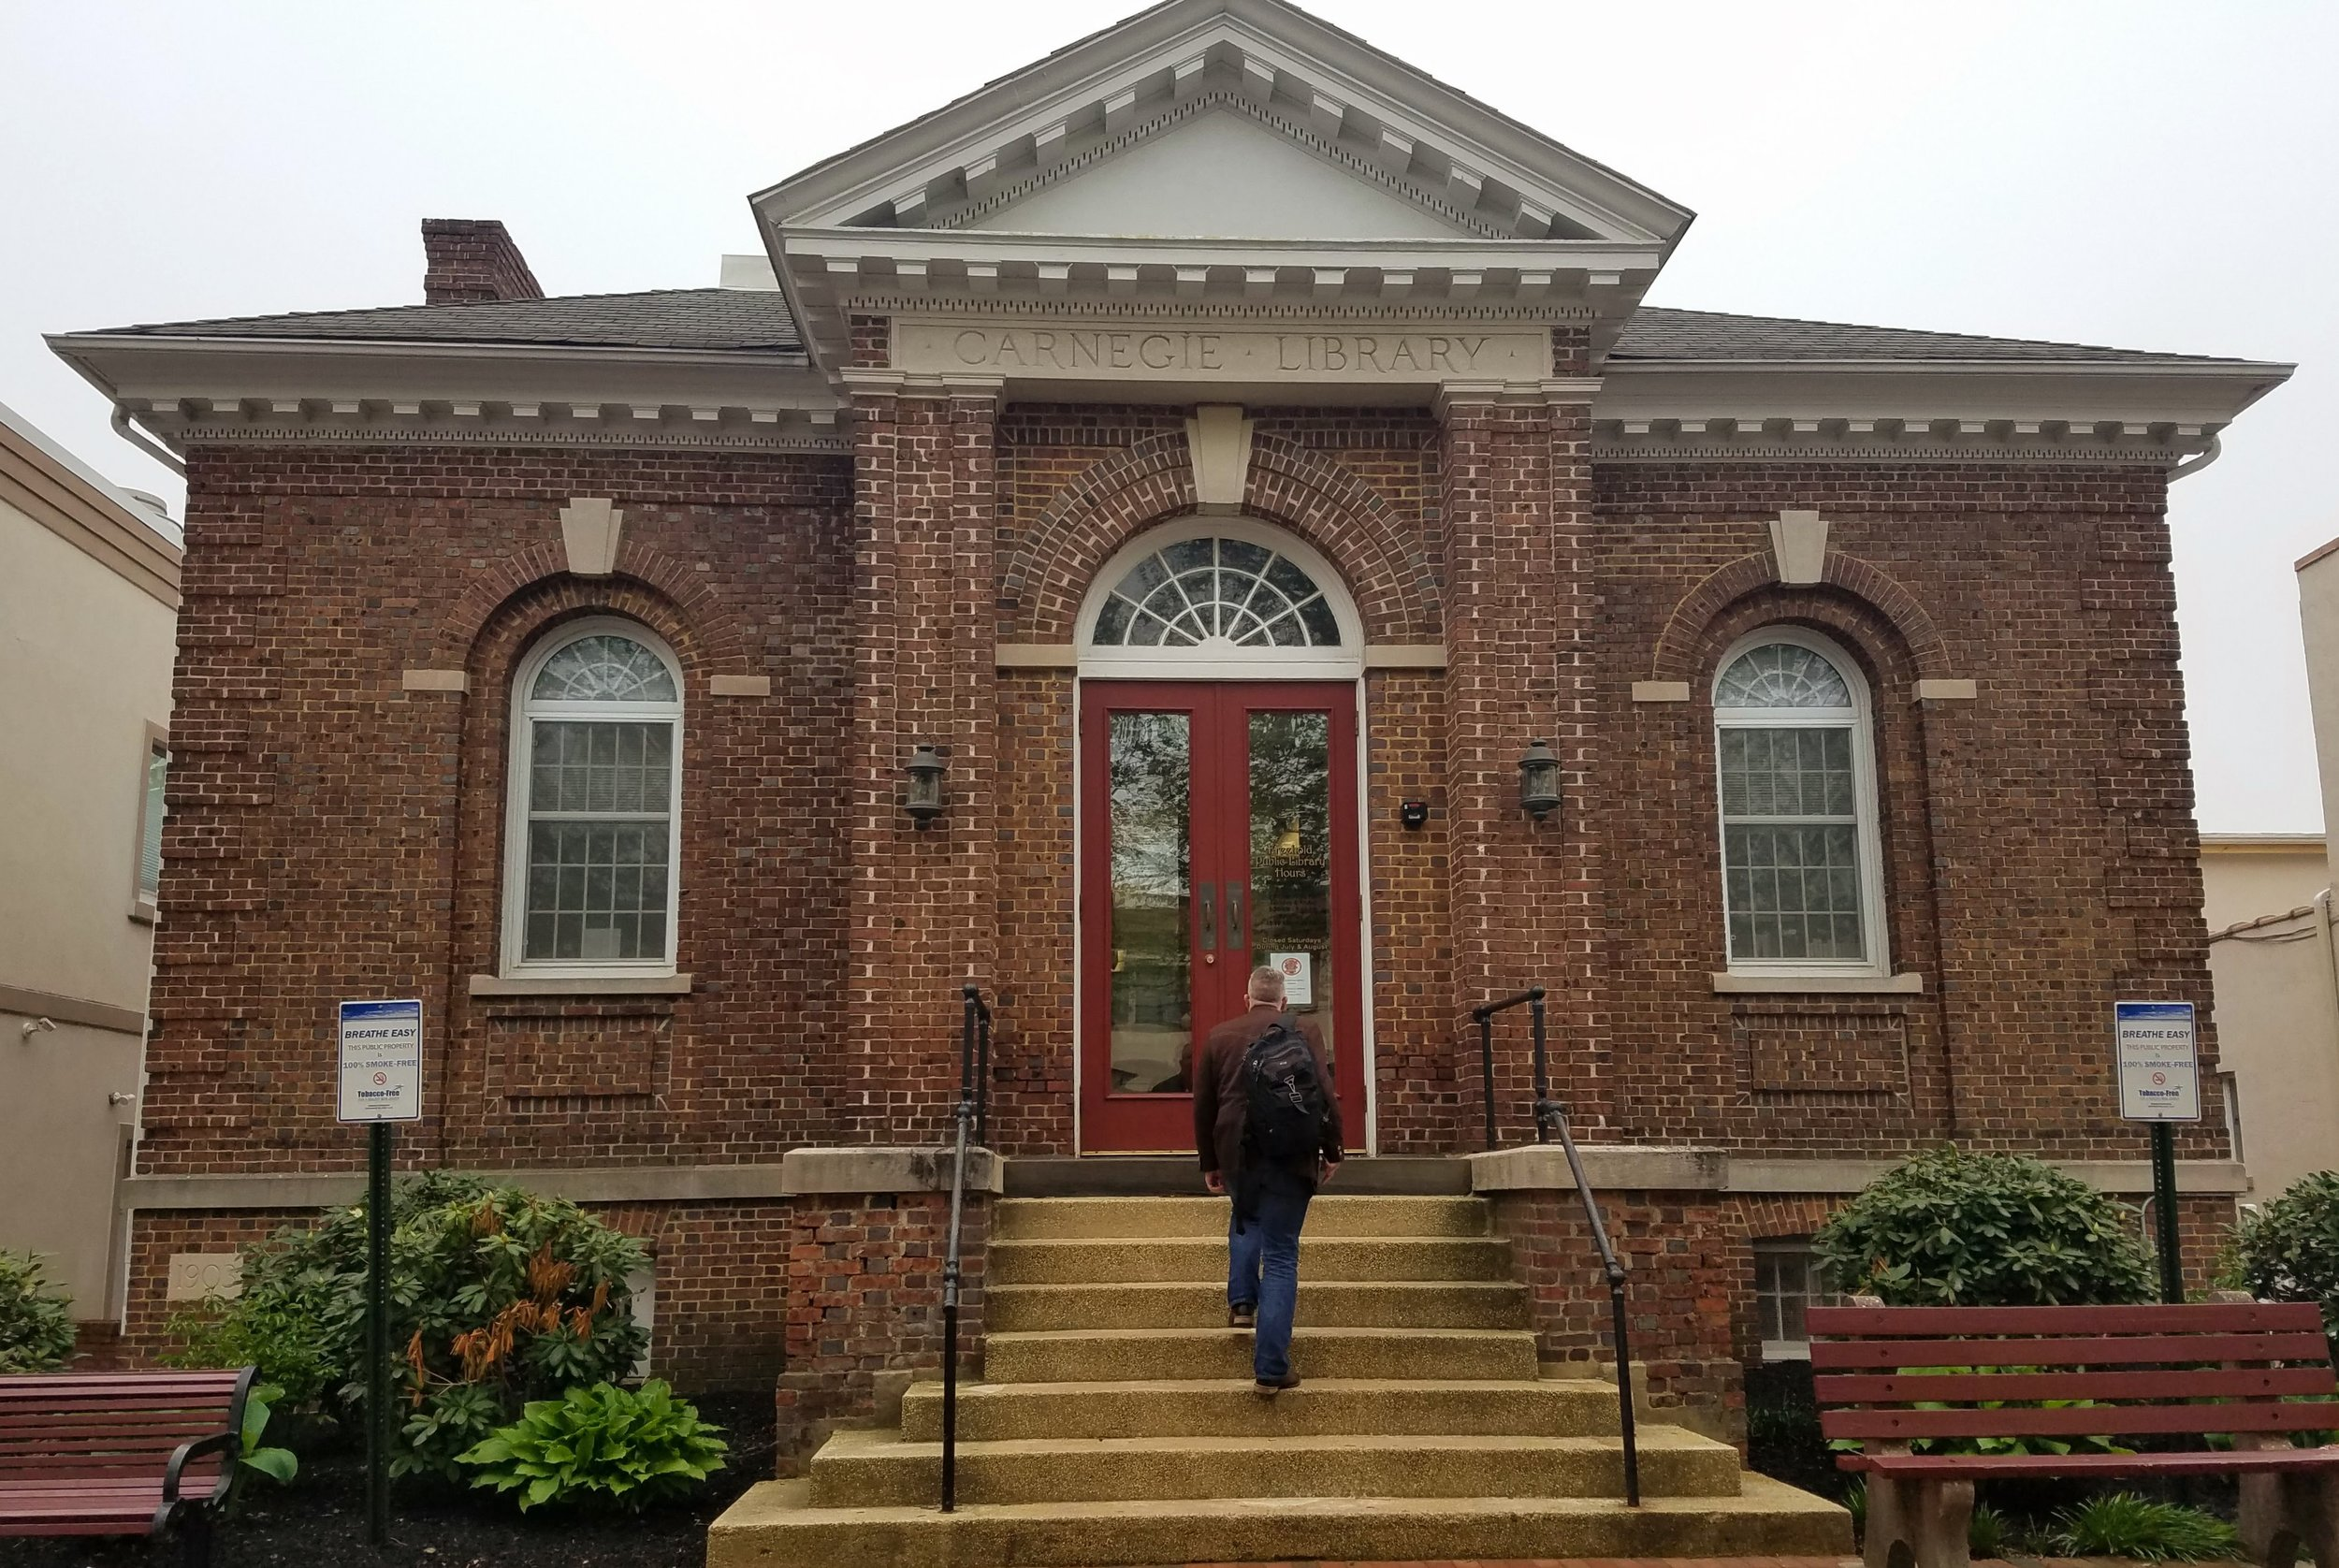 The Freehold Public Library